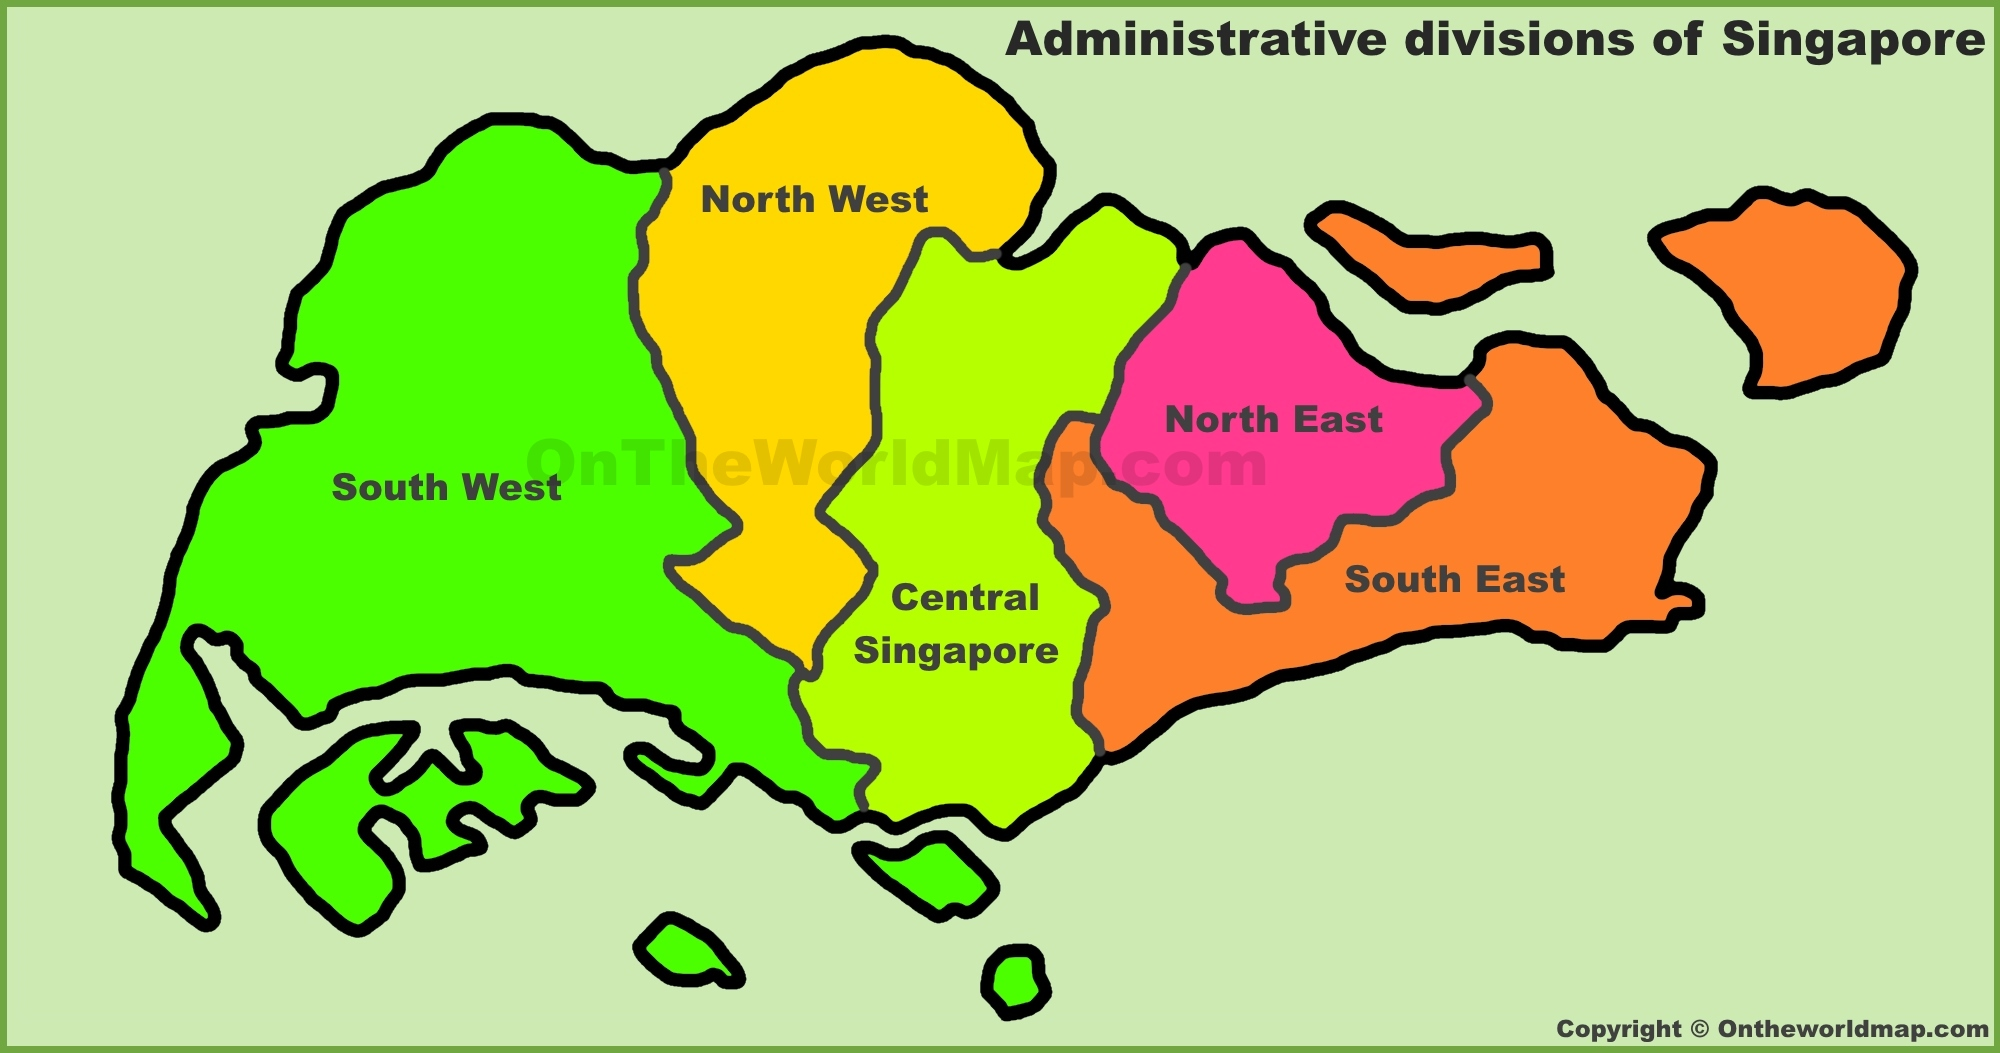 Administrative divisions map of Singapore